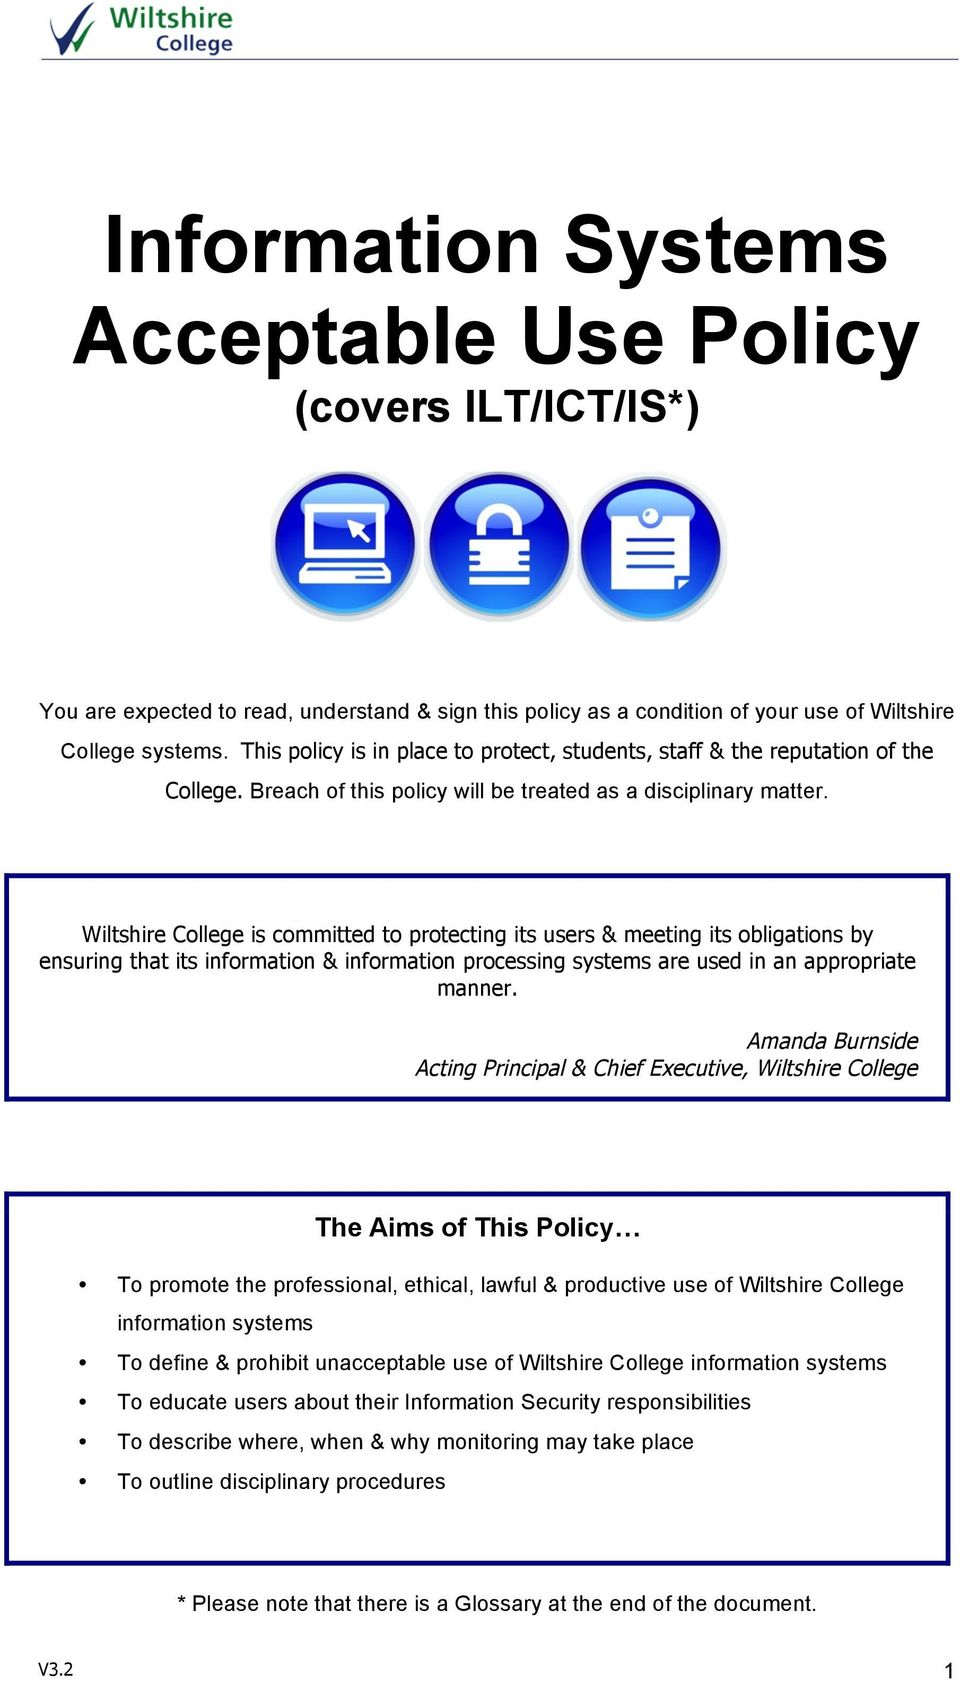 Wiltshire College is committed to protecting its users & meeting its obligations by ensuring that its information & information processing systems are used in an appropriate manner.